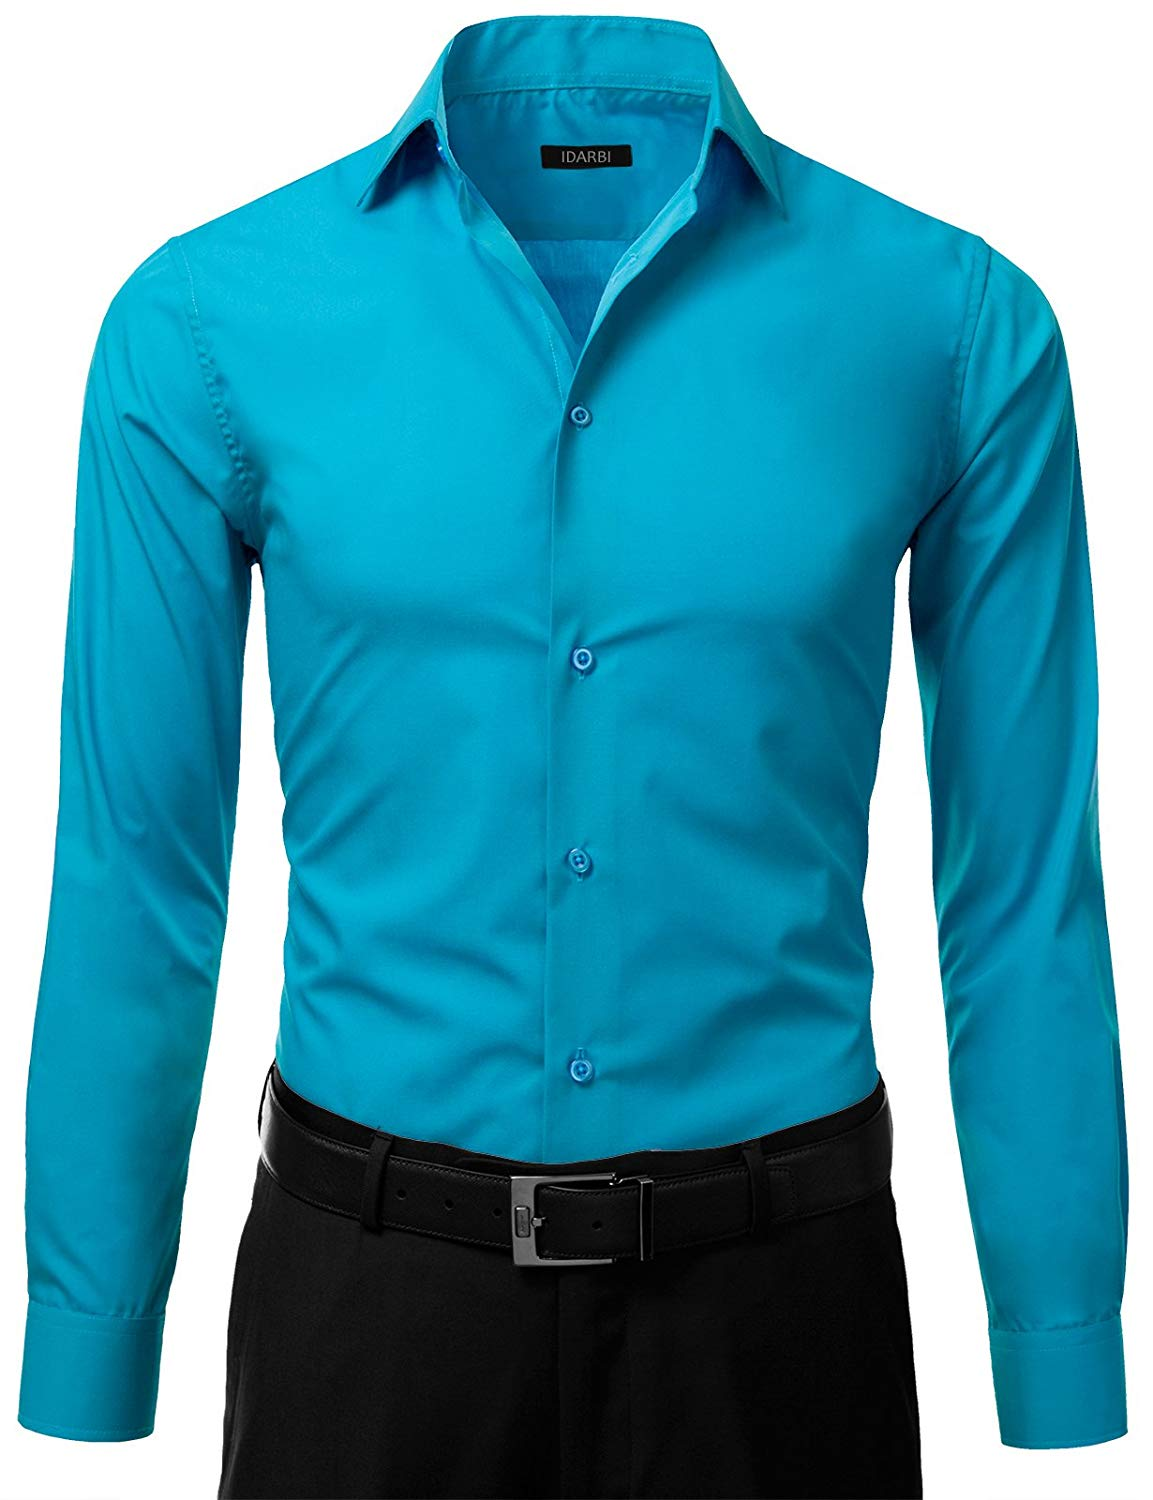 9c77d93a1 Cheap Red Slim Fit Dress Shirt, find Red Slim Fit Dress Shirt deals ...